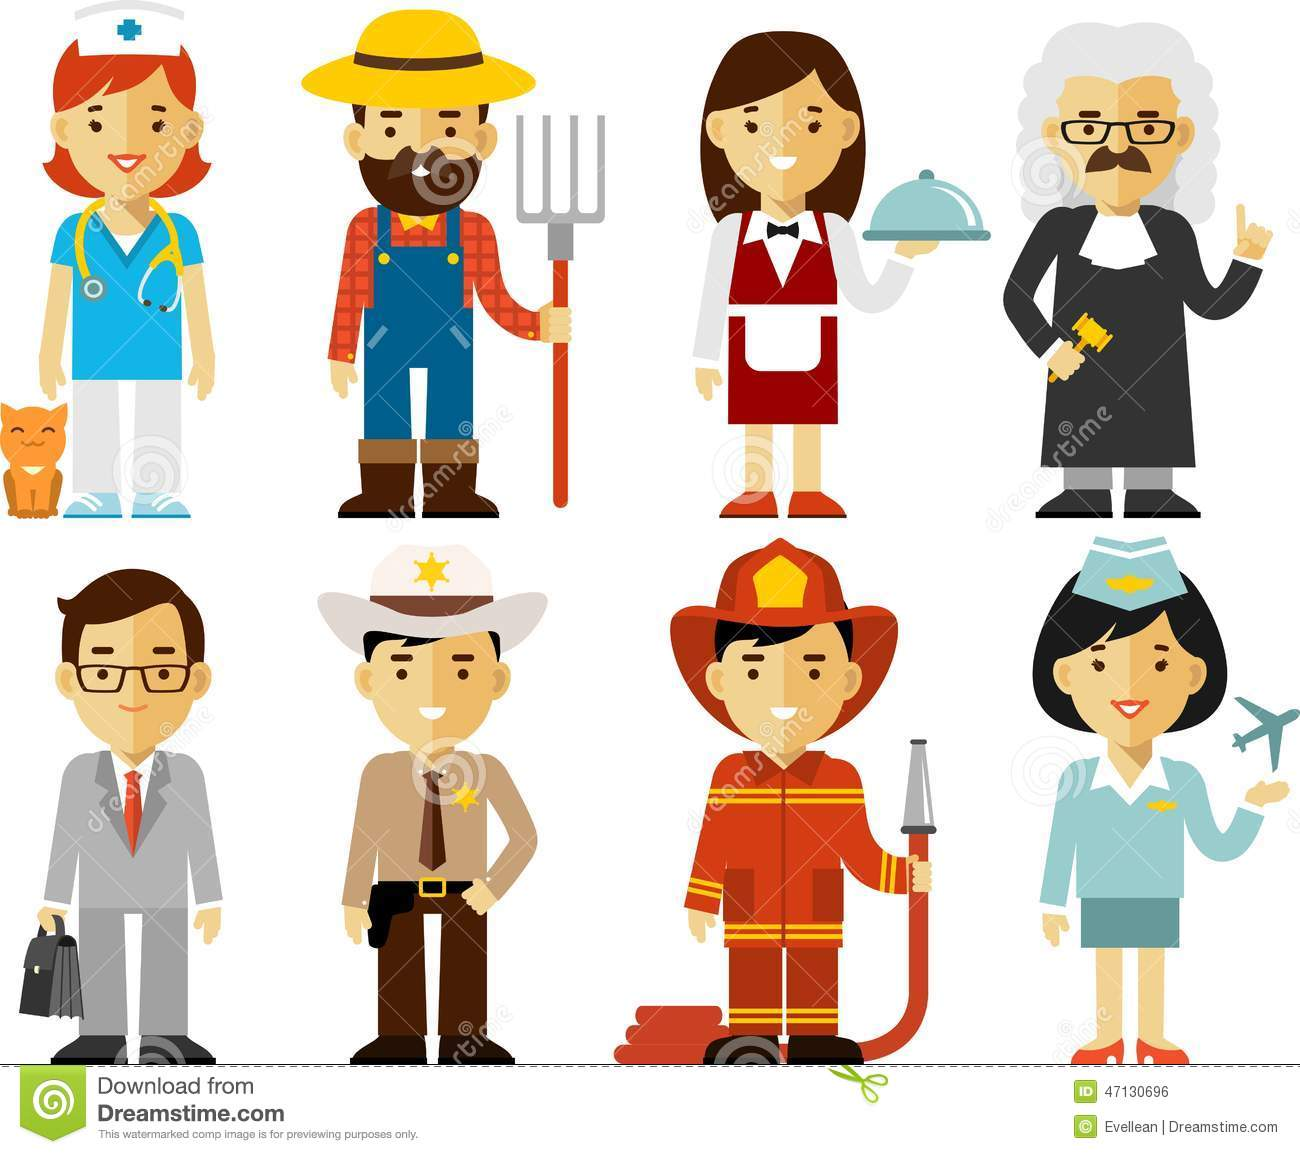 Free PowerPoint Presentations about Occupations for Kids ...